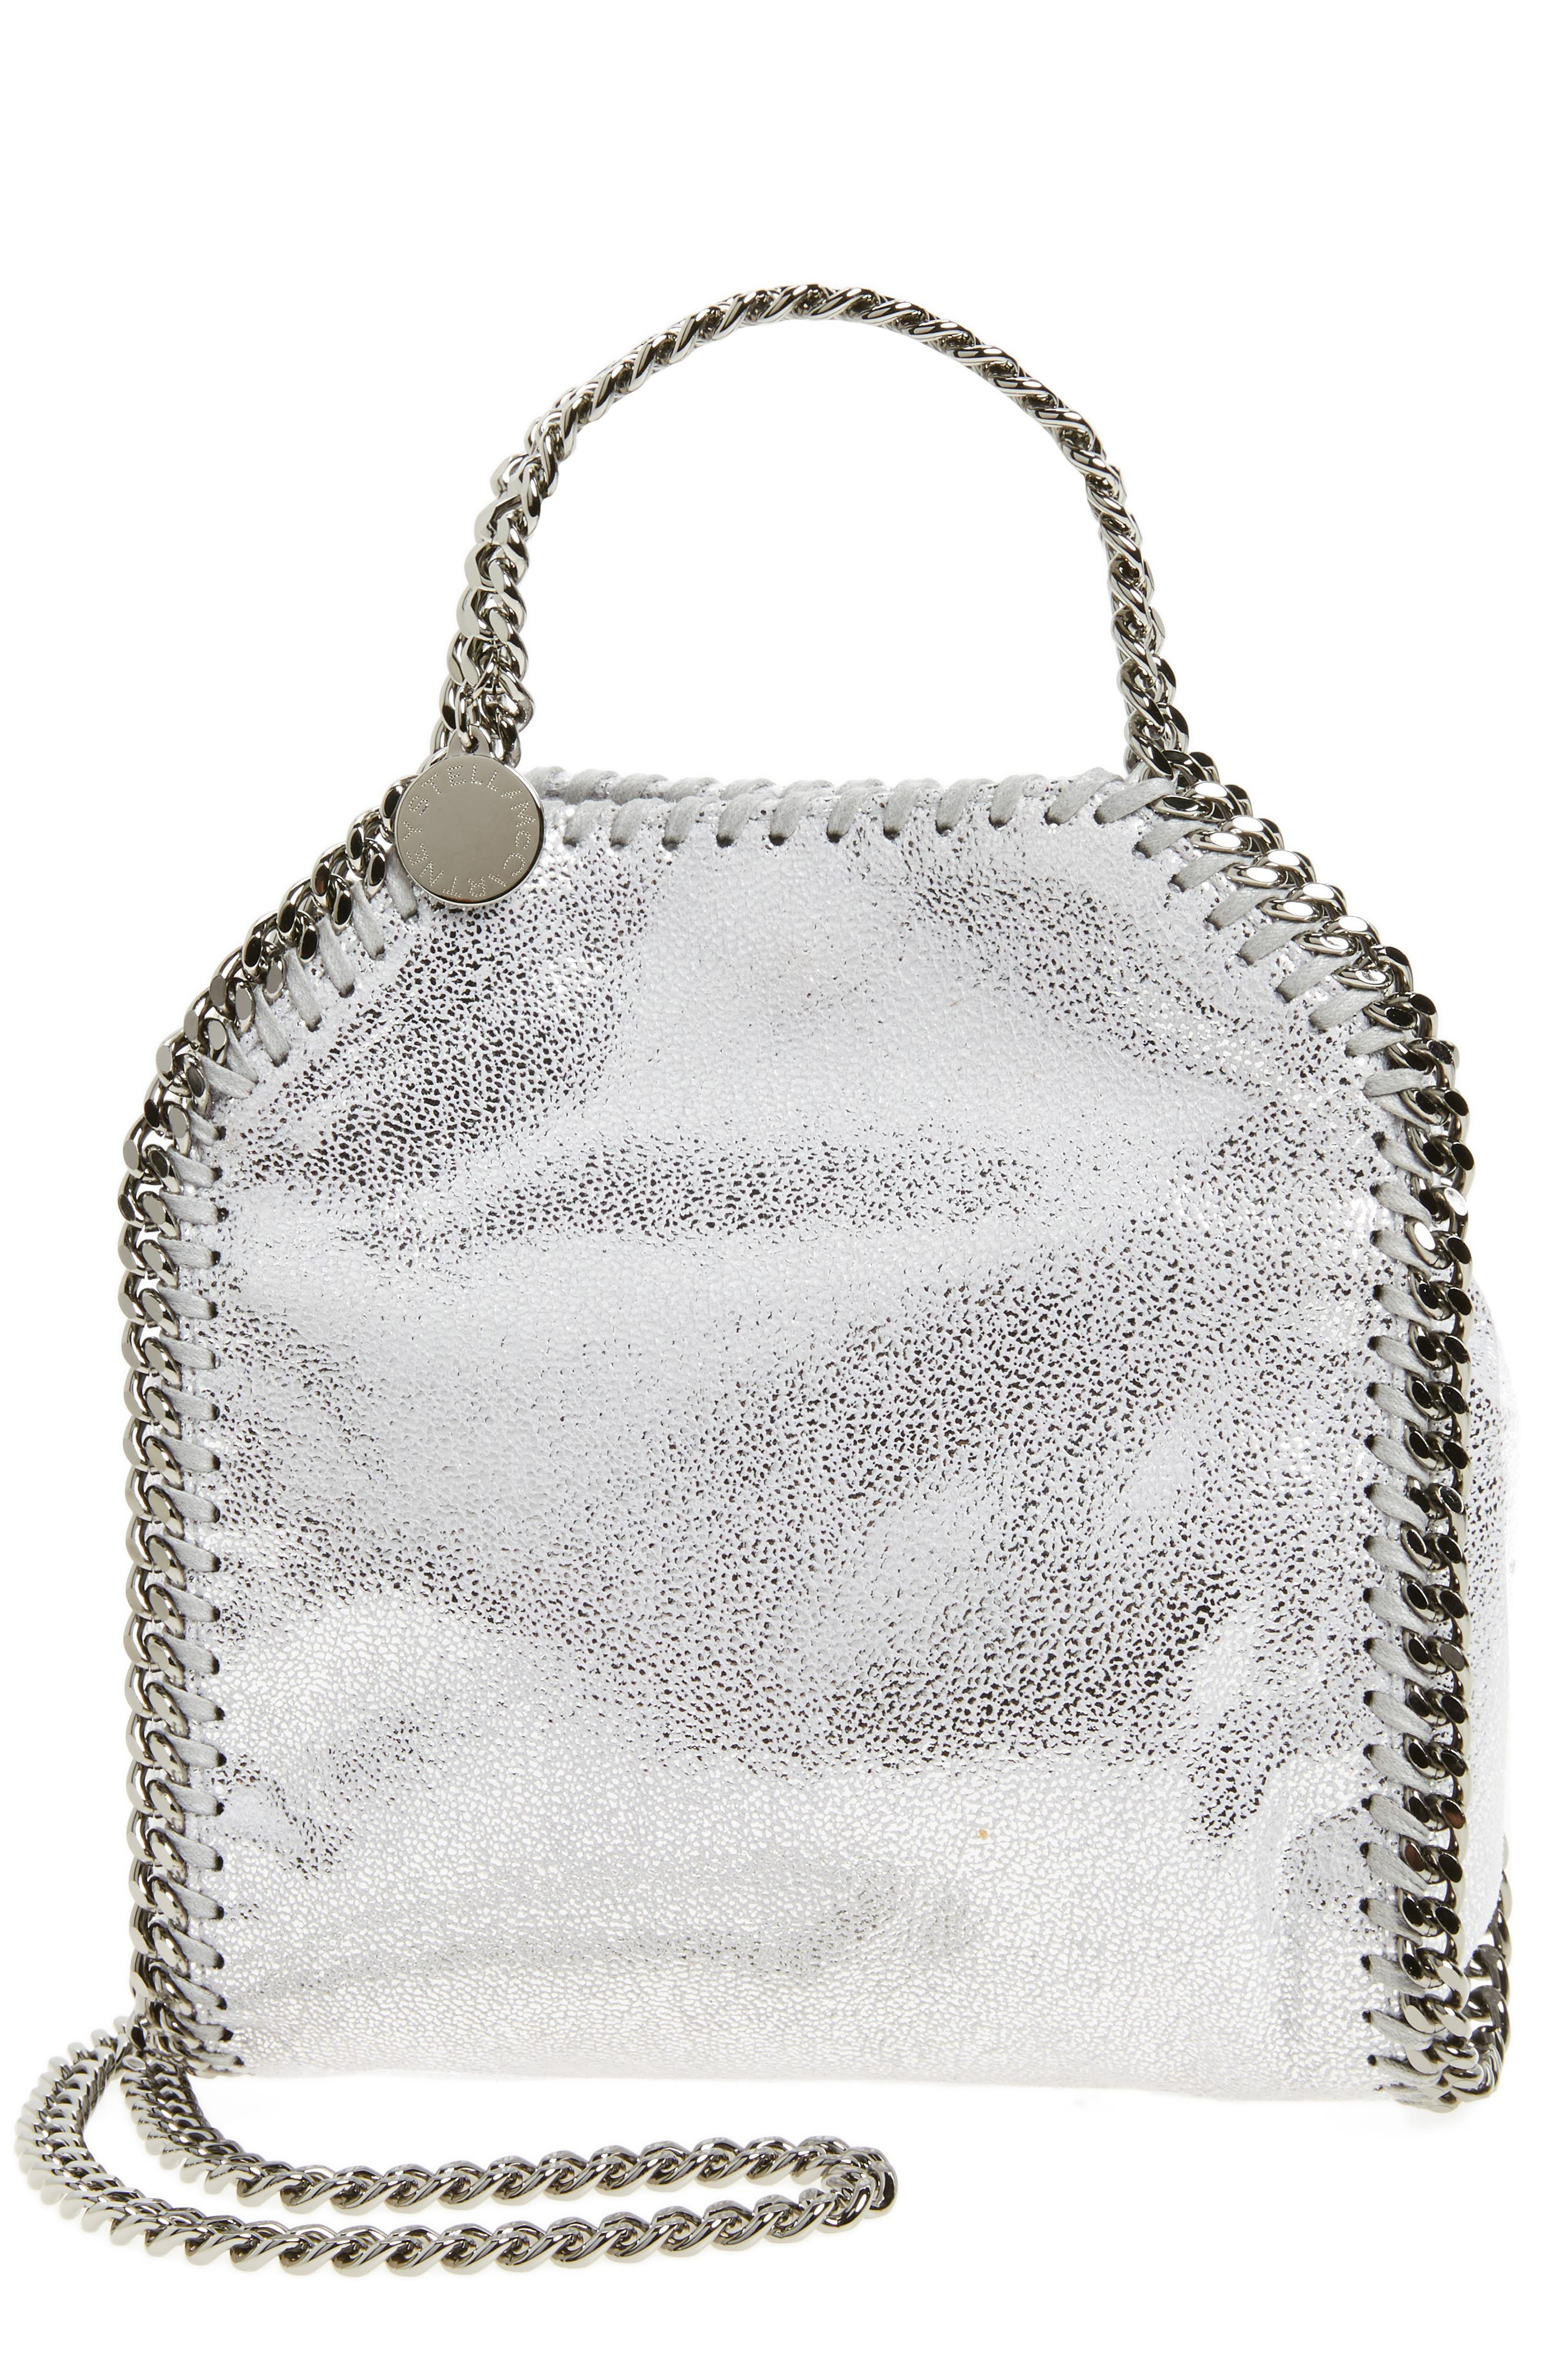 'Tiny Falabella' Metallic Faux Leather Crossbody Bag,                             Main thumbnail 1, color,                             Silver